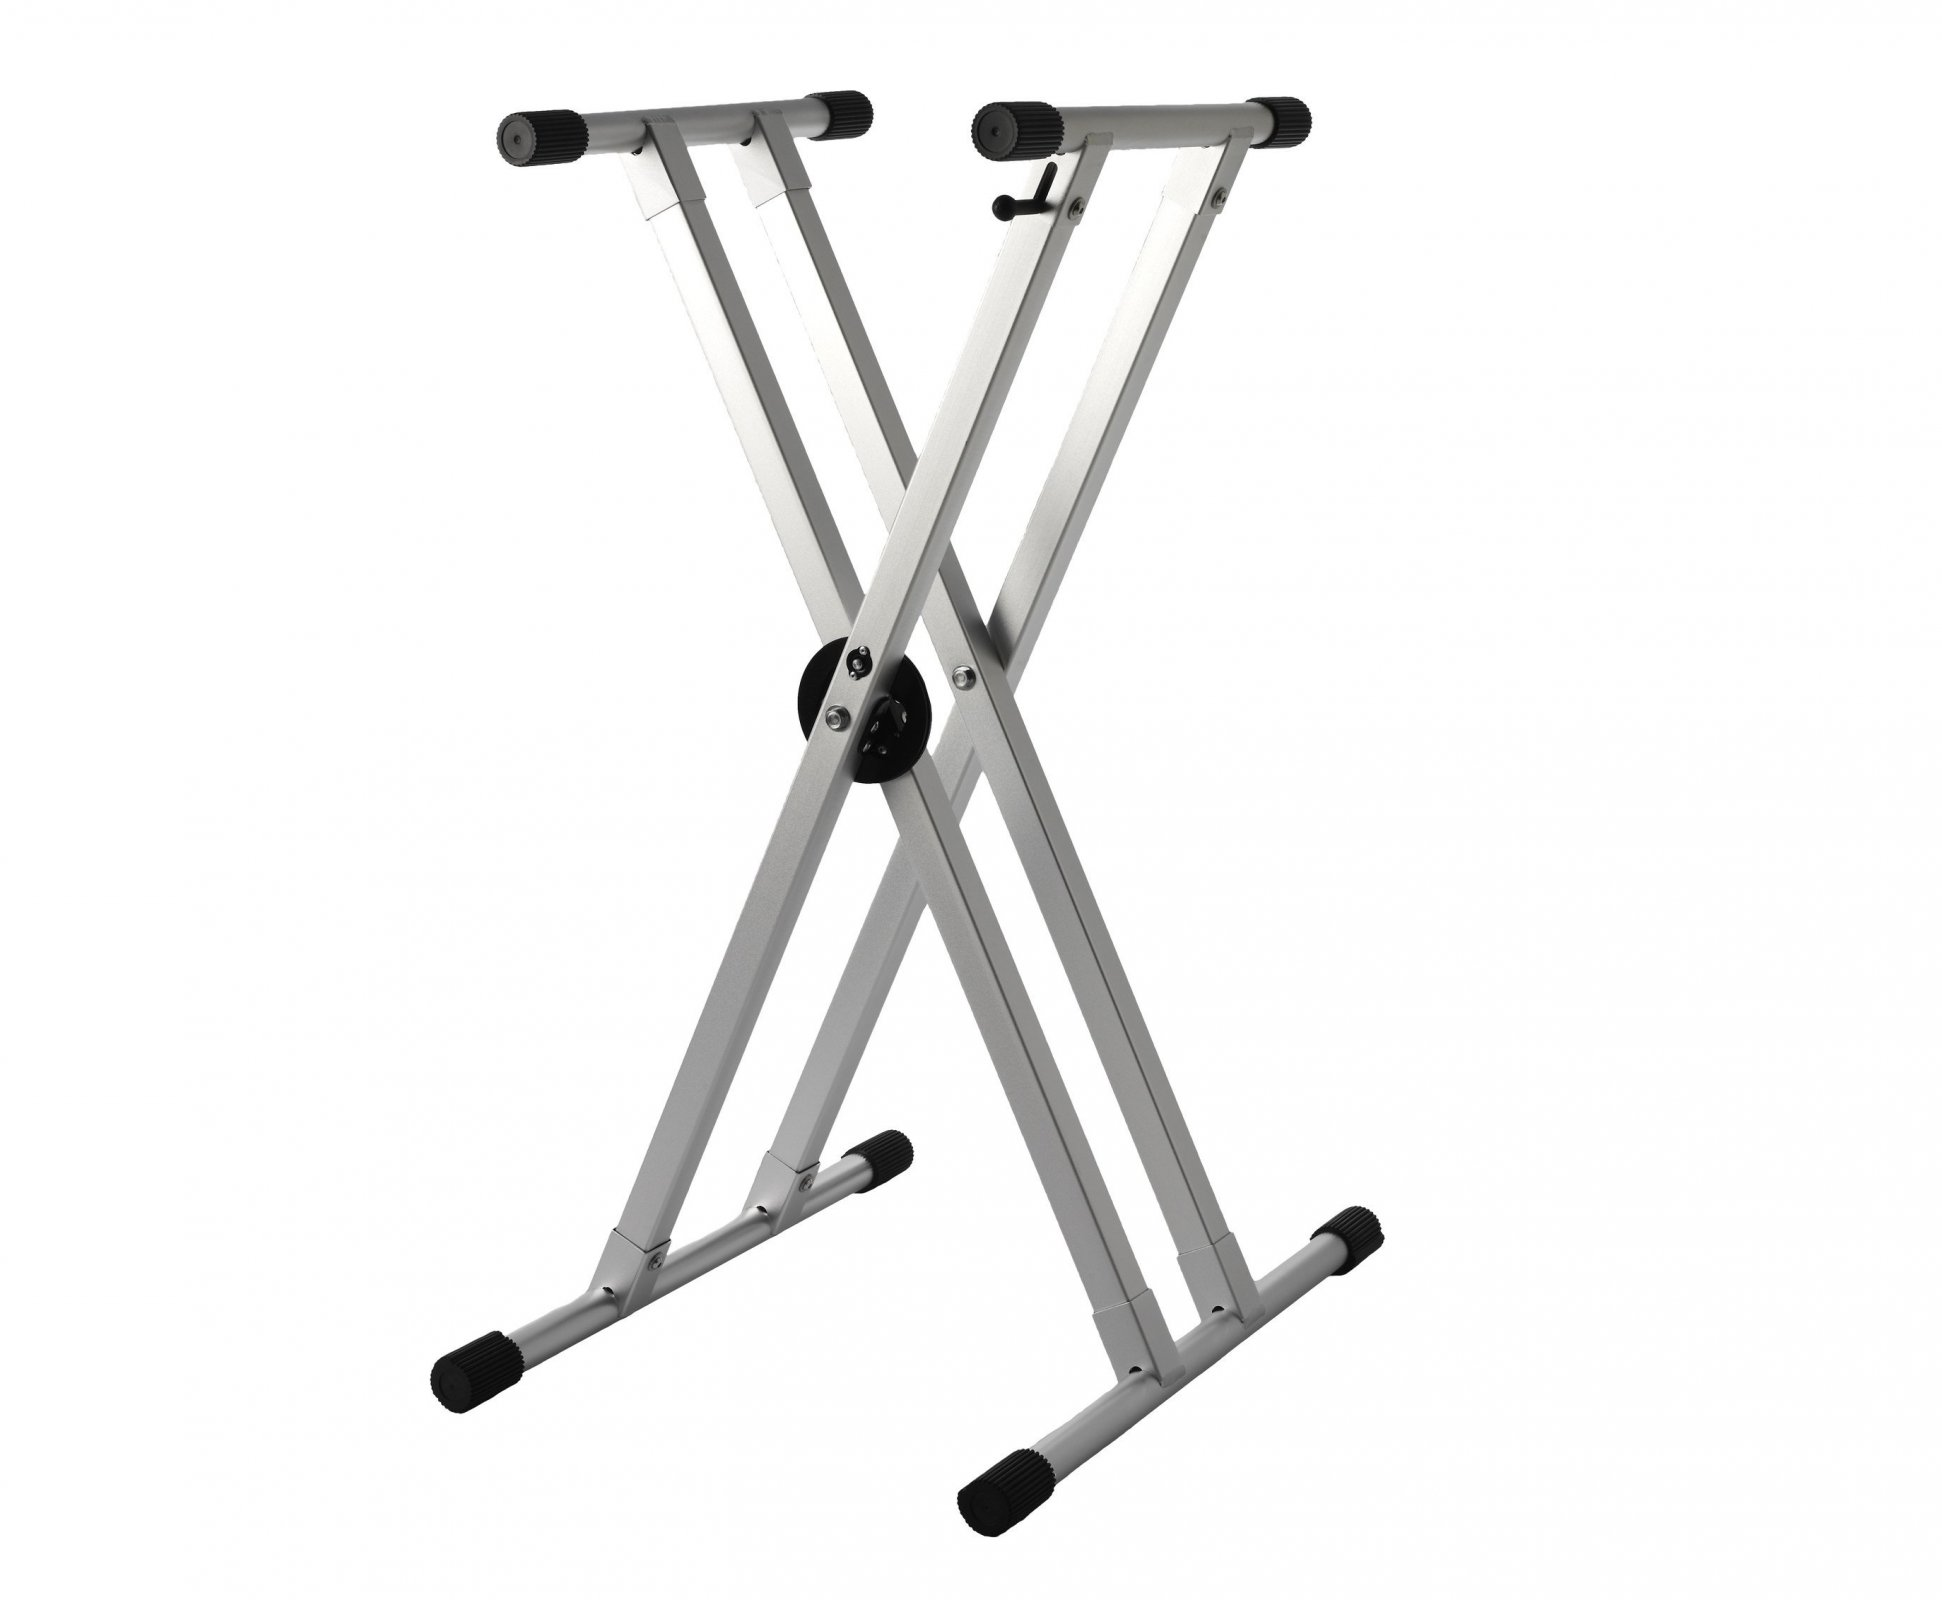 Strukture Knockdown Aluminum Double Braced Keyboard Stand with Trigger, Anodized Silver